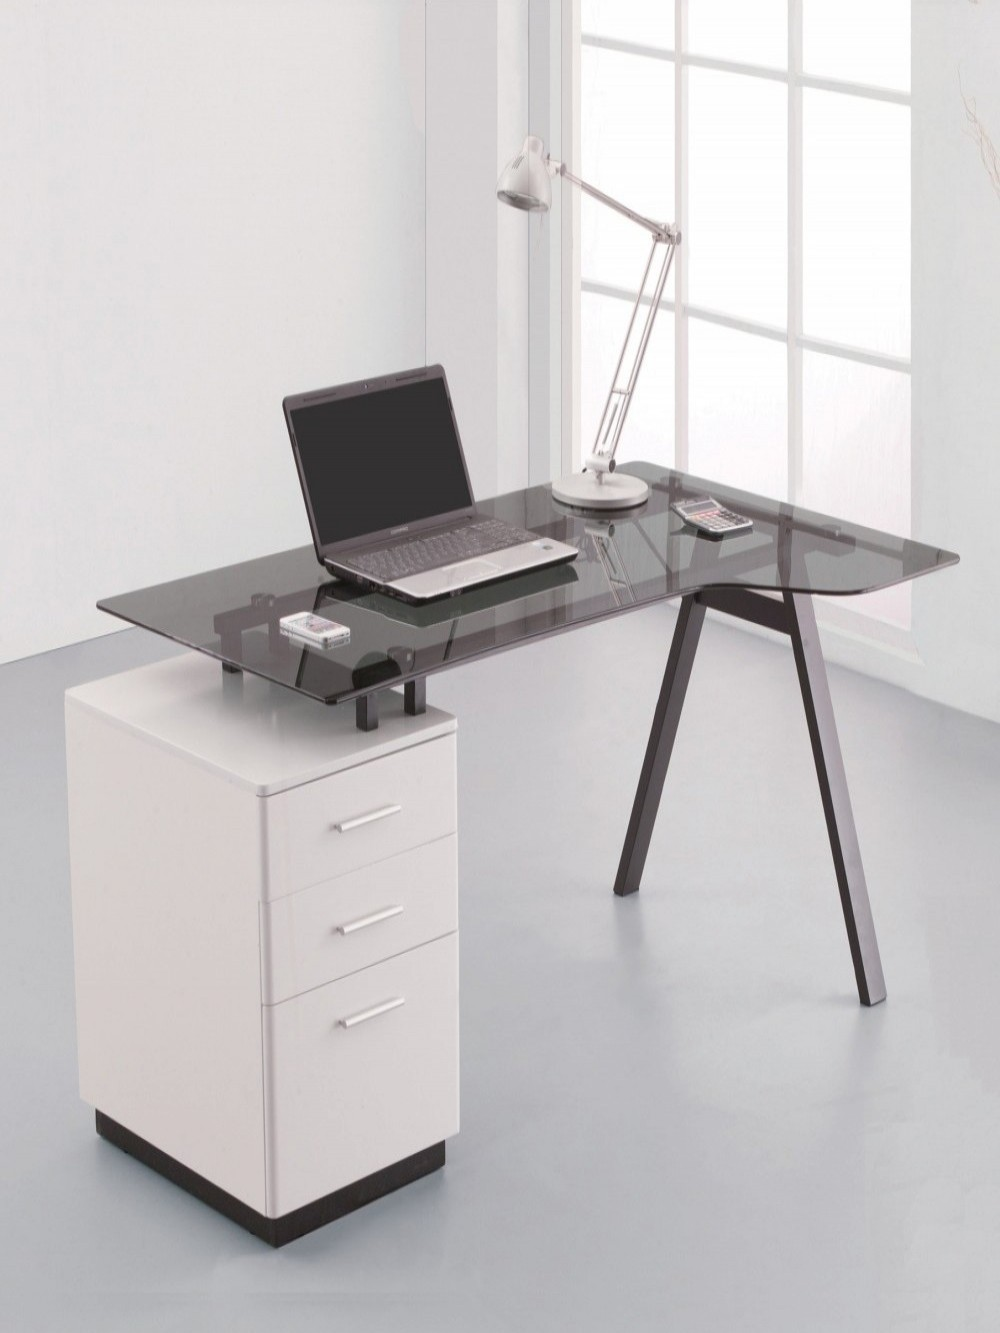 Home Office Desk Cleveland 4 Computer Desk AW23377-GY